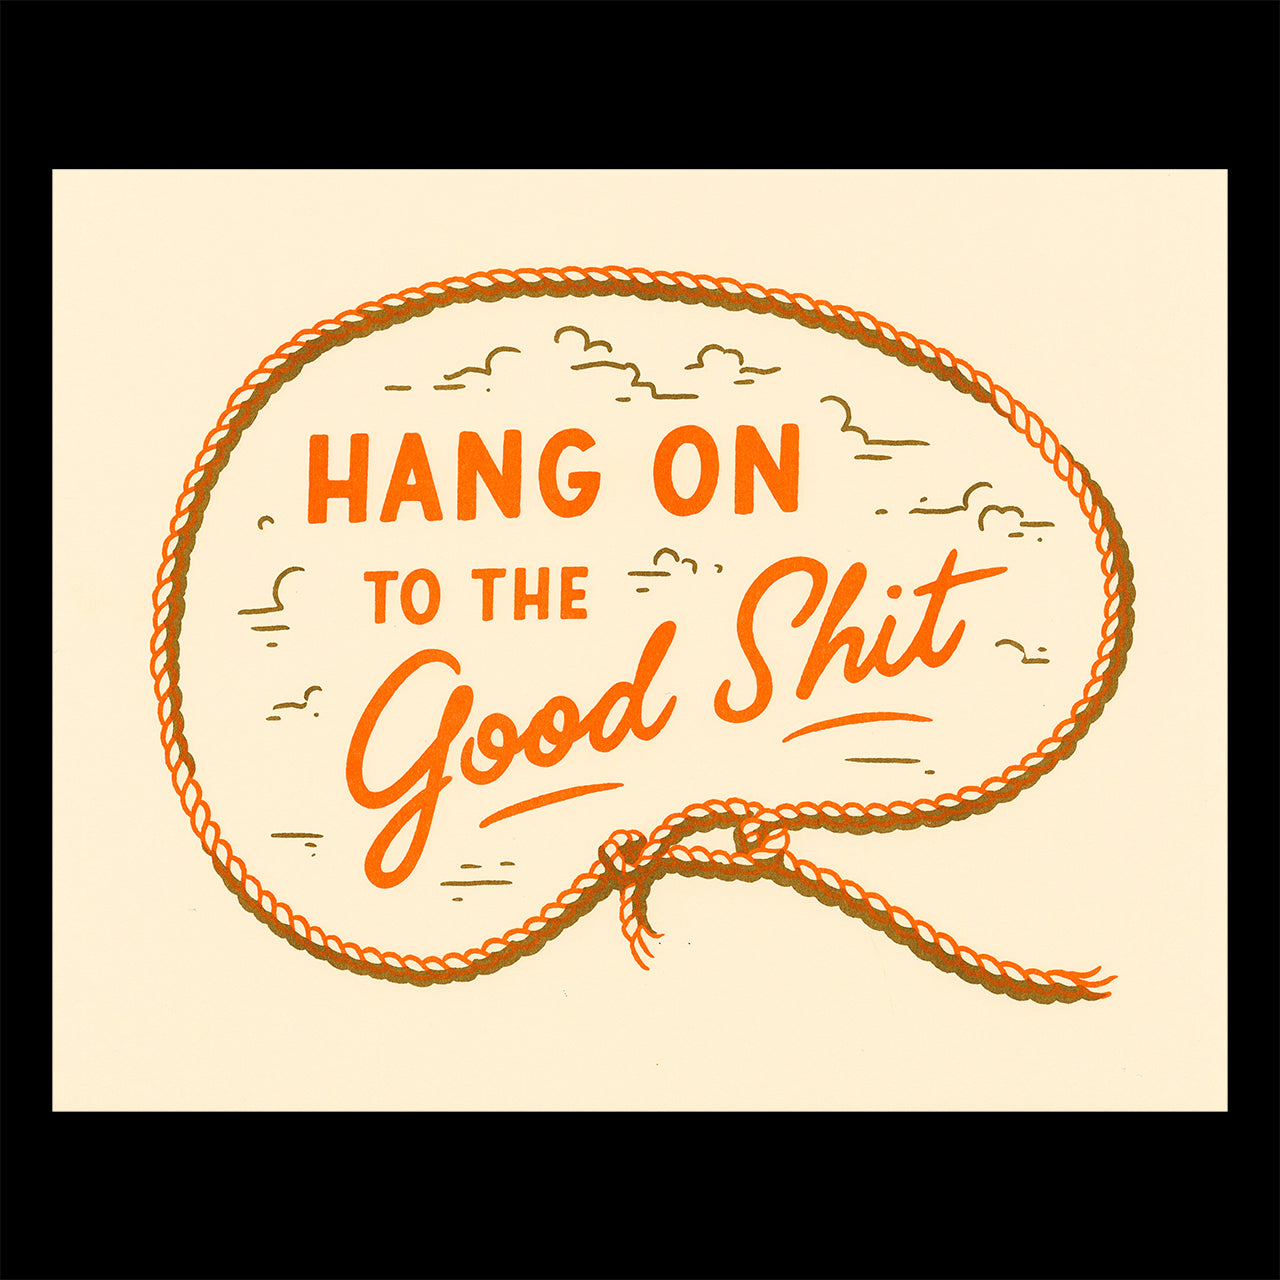 """A print on cream paper with the words """"hang on to the good shit"""" surrounded by a lasso"""